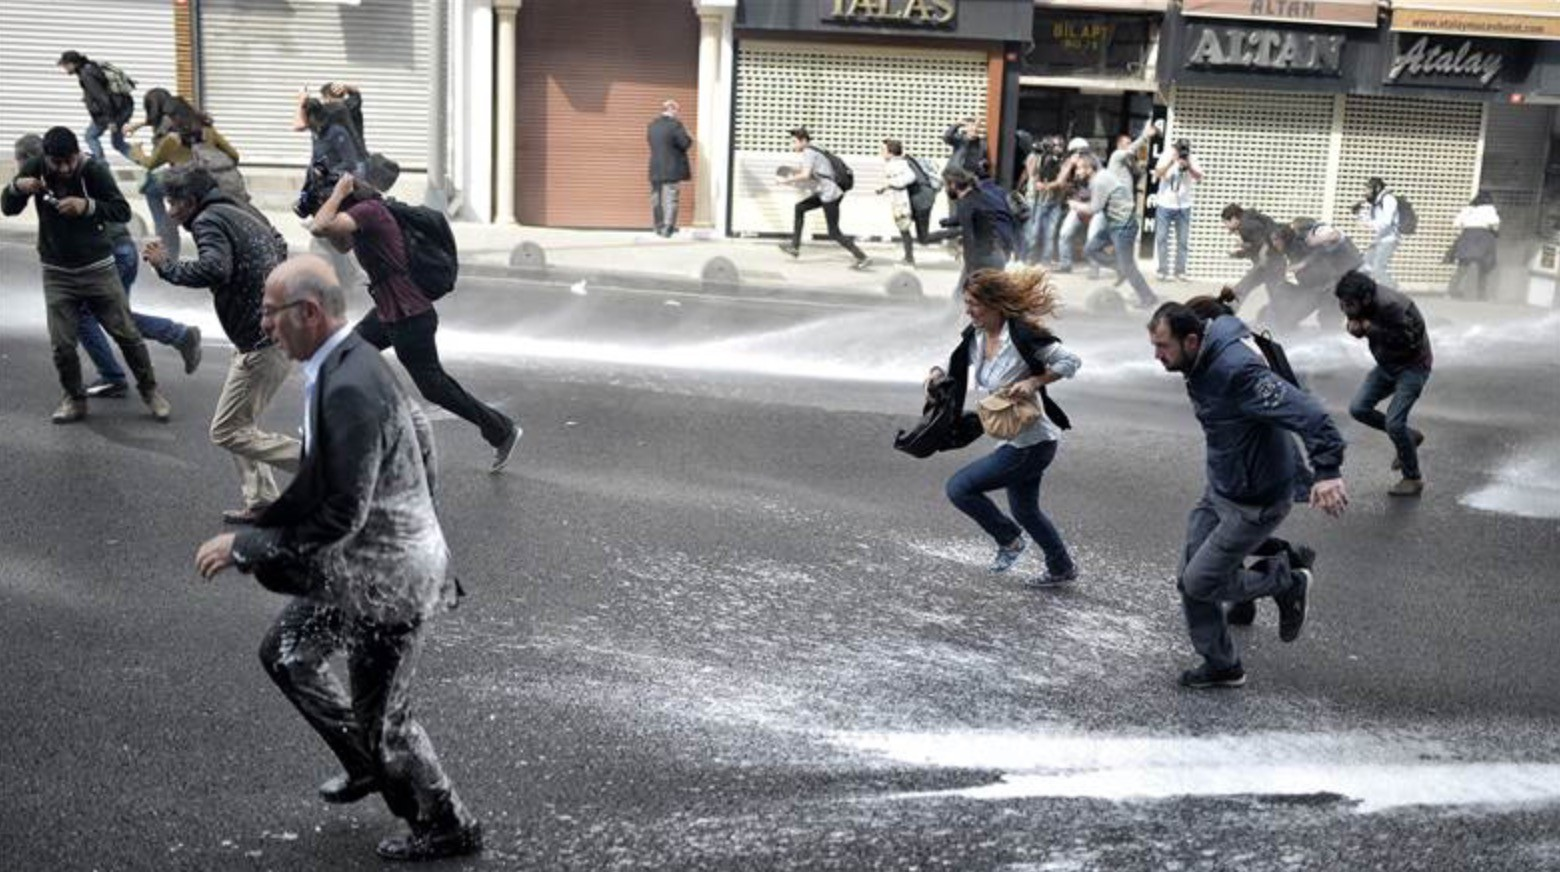 Turkish police use a water cannon to disperse demonstrators protesting Islamic State militants in Istanbul, Turkey, on Oct. 7. Airstrikes hit three groups of Islamic State fighters on the southern outskirts of the besieged Kurdish town of Kobani, the Syrian Observatory for Human Rights said